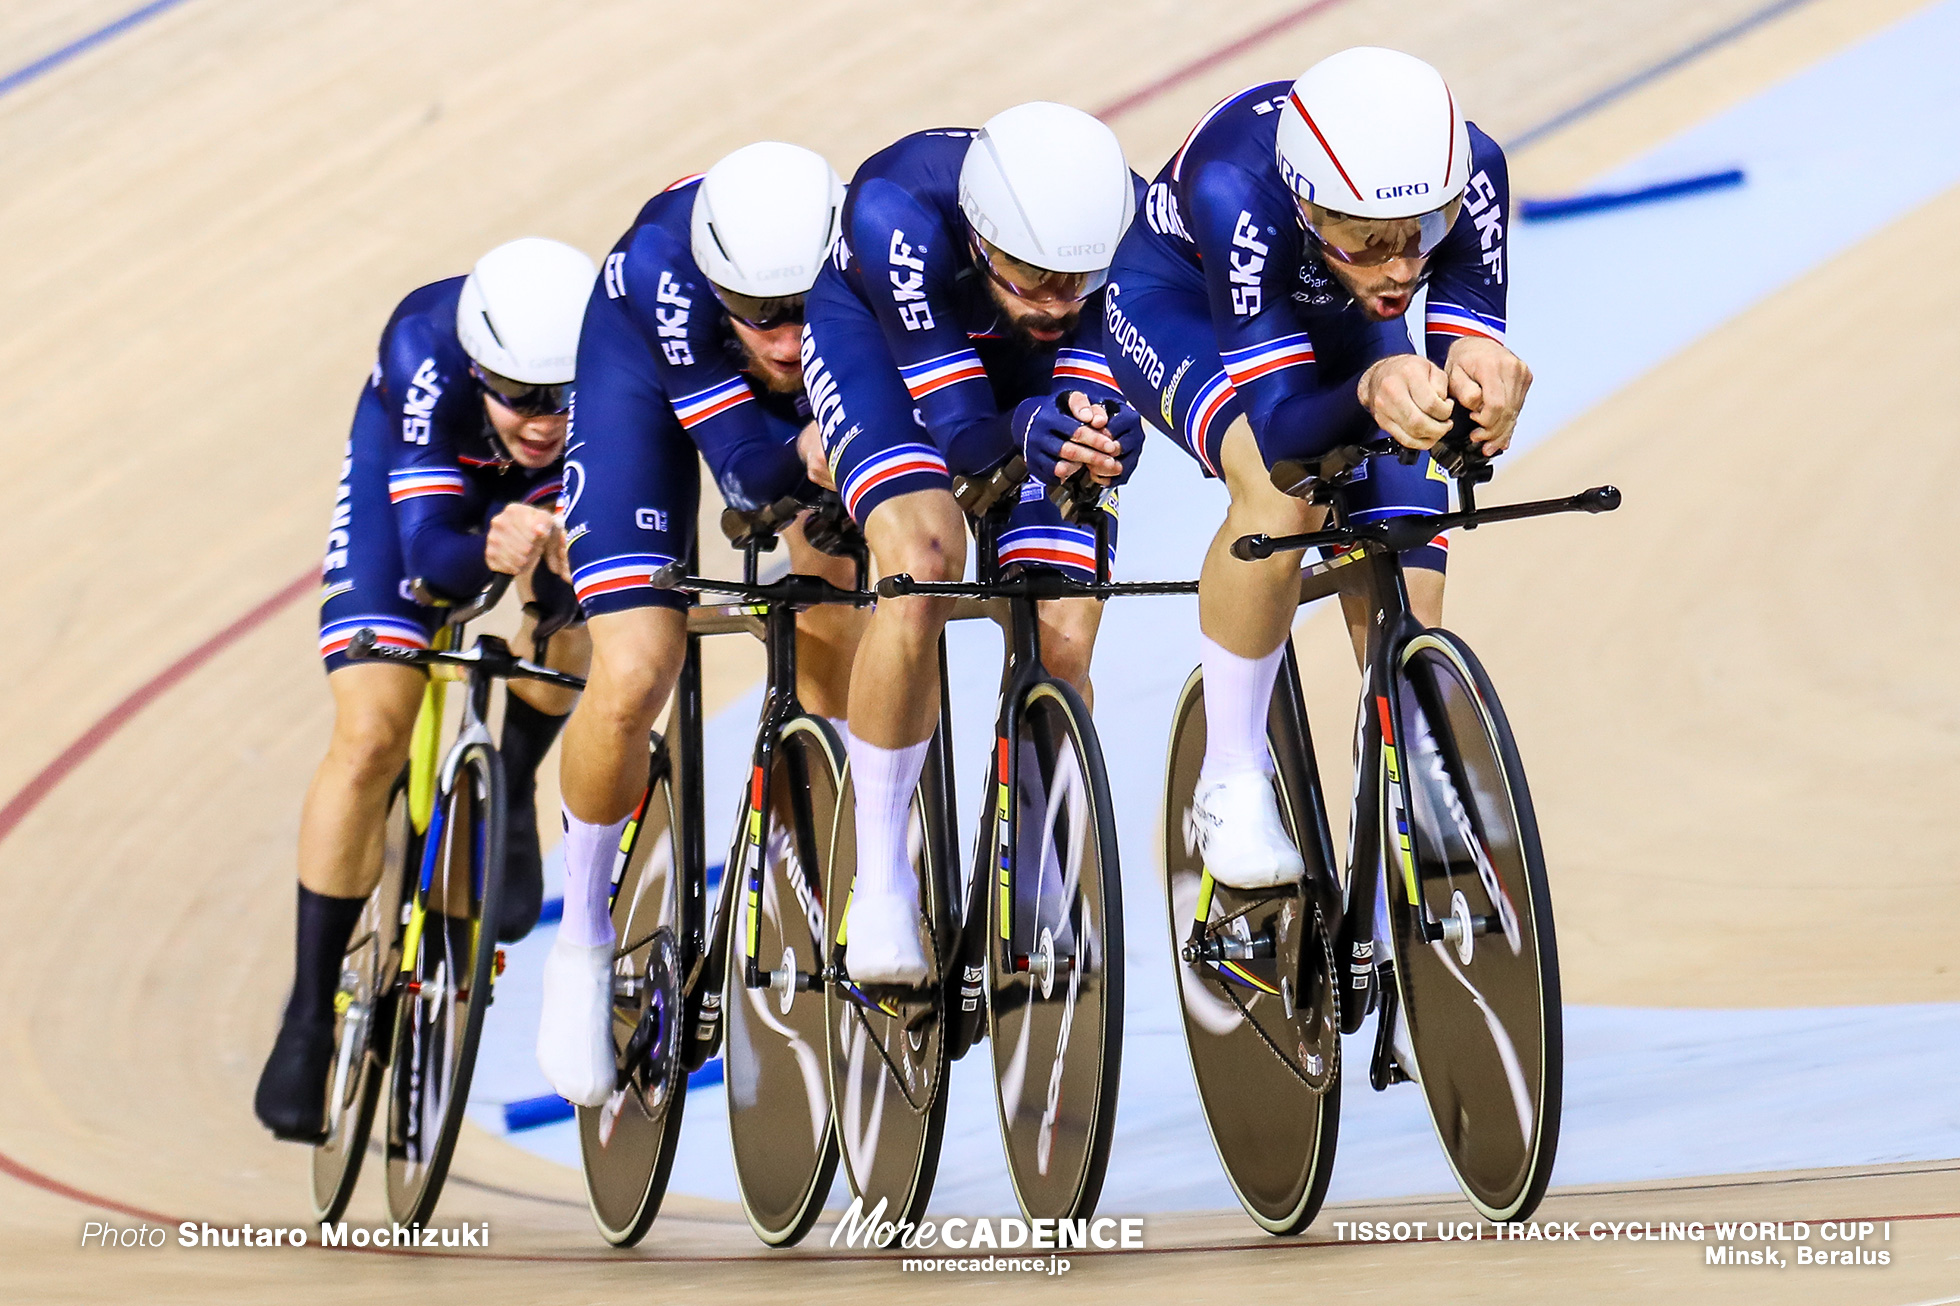 Final / Men's Team Pursuit / TISSOT UCI TRACK CYCLING WORLD CUP I, Minsk, Beralus